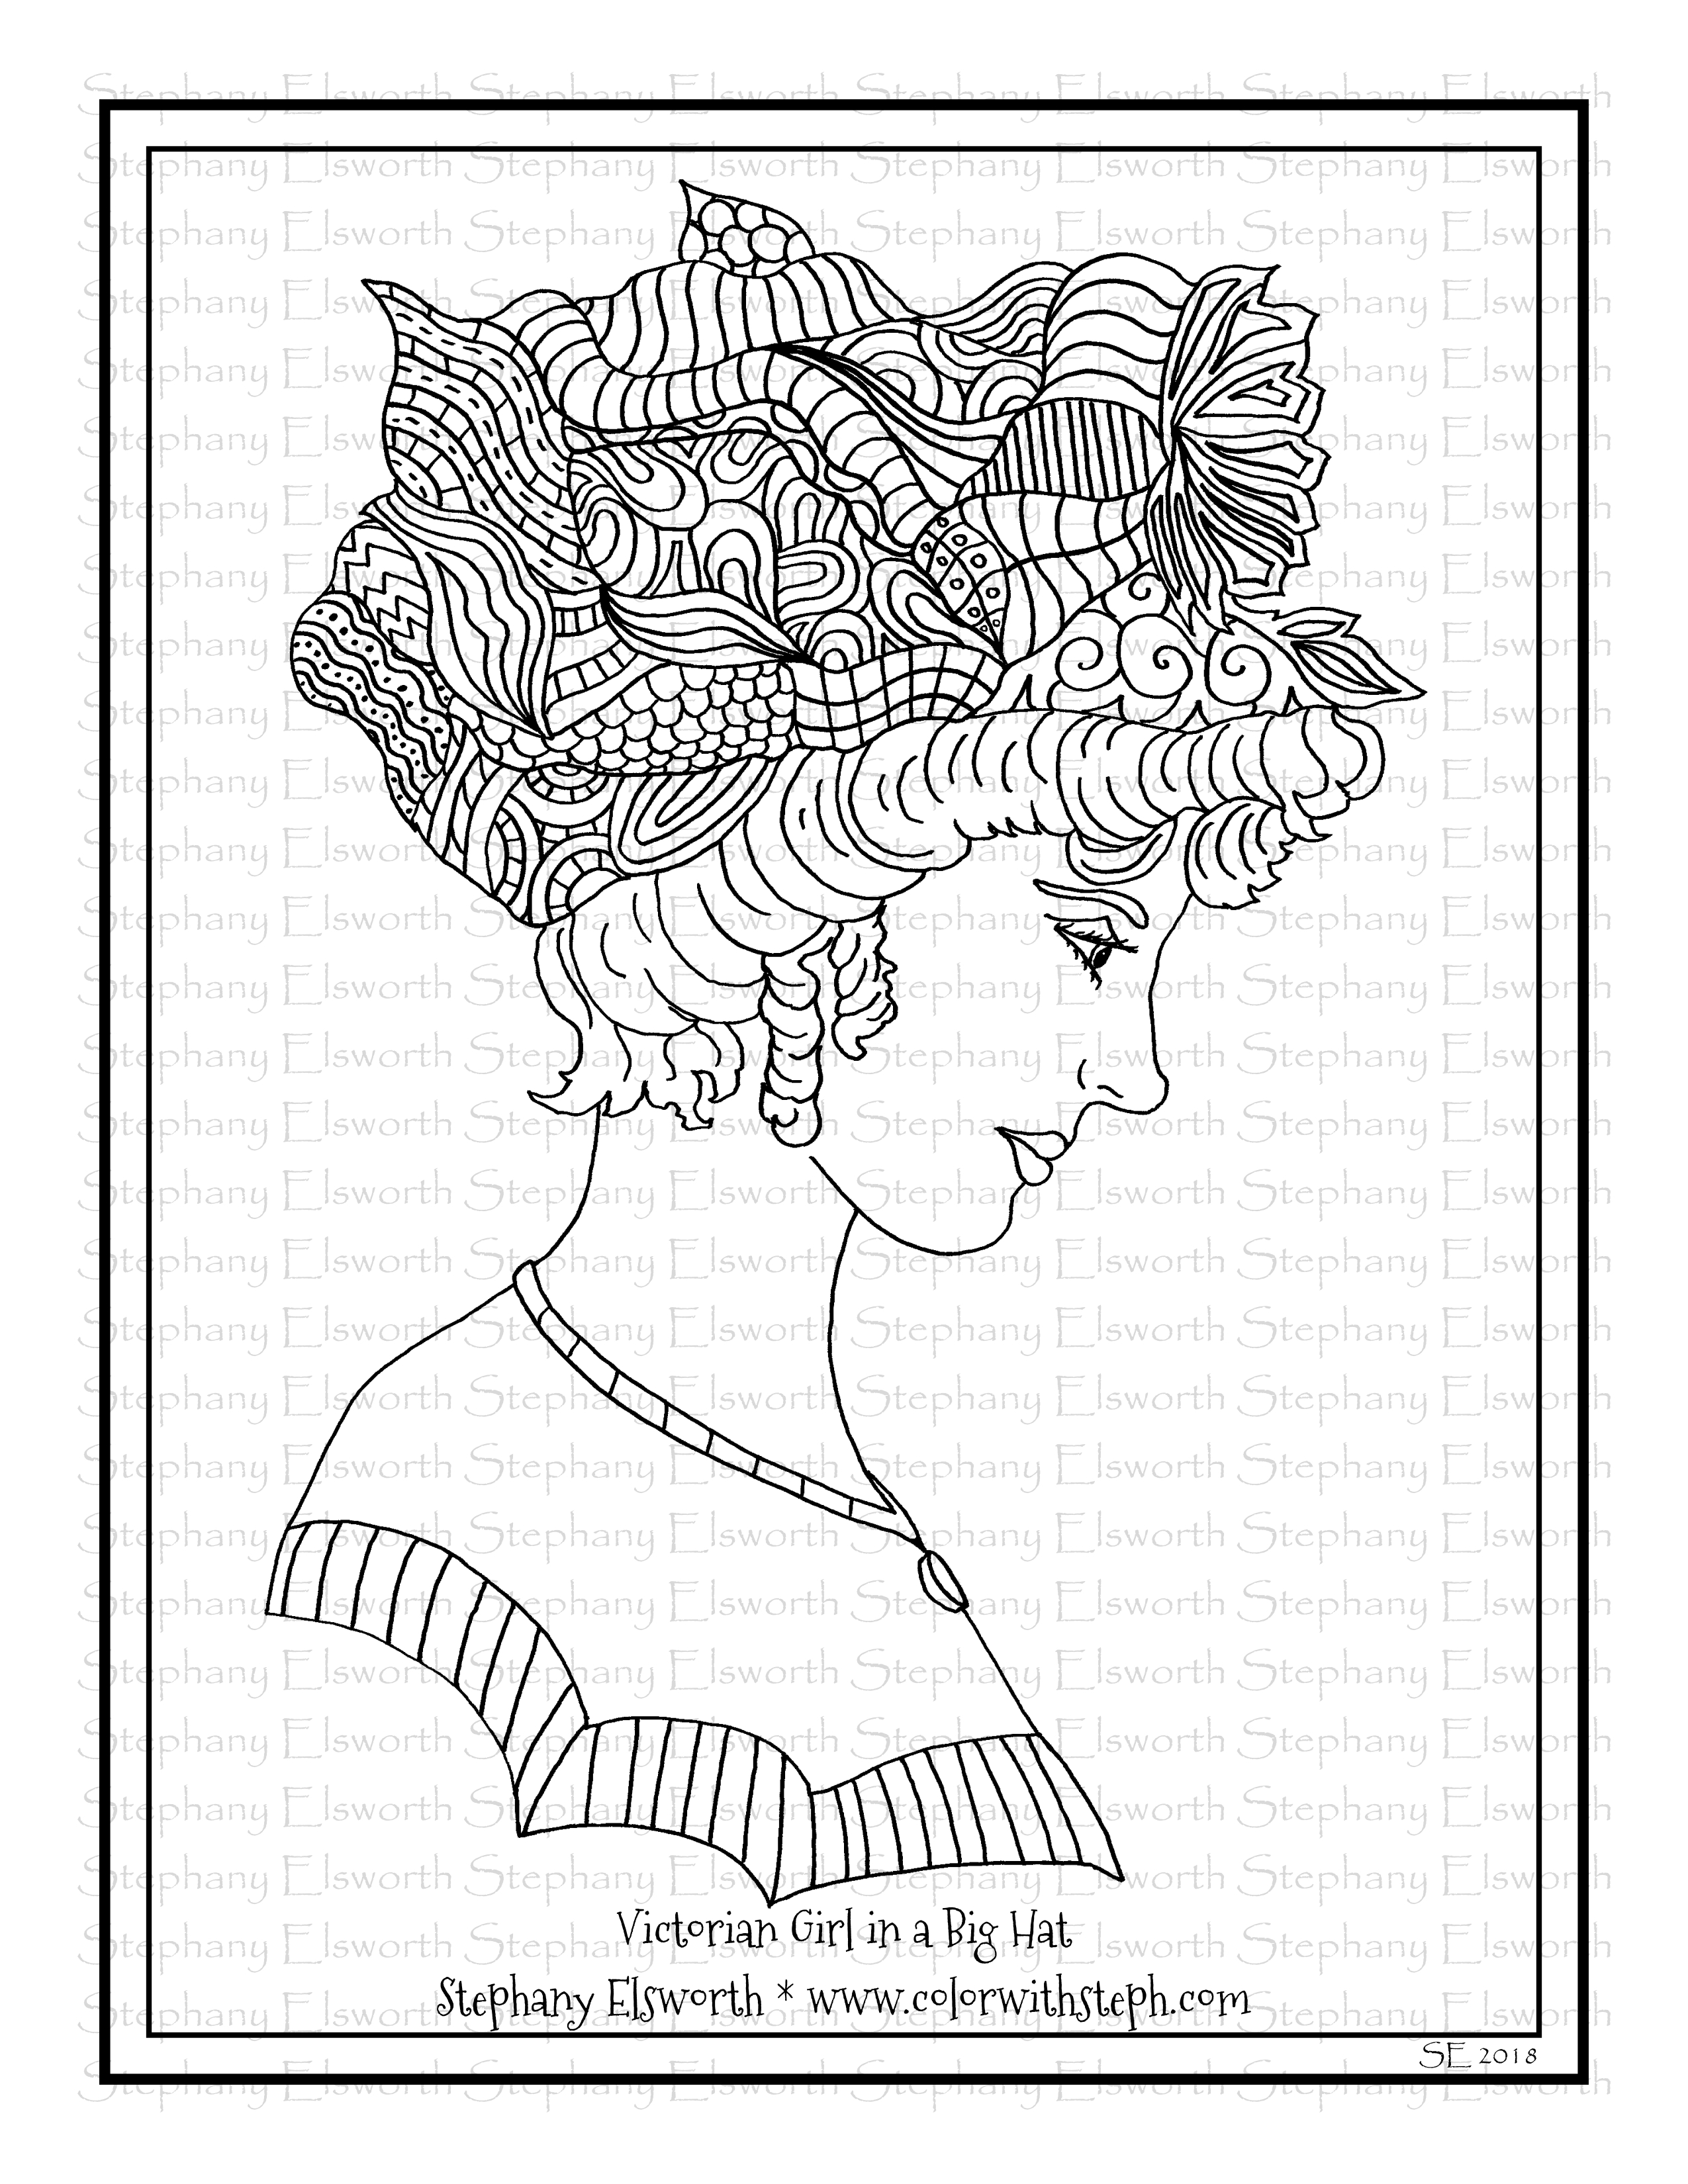 victorian colouring sheets victorian era printable adult coloring pages from favoreads victorian sheets colouring